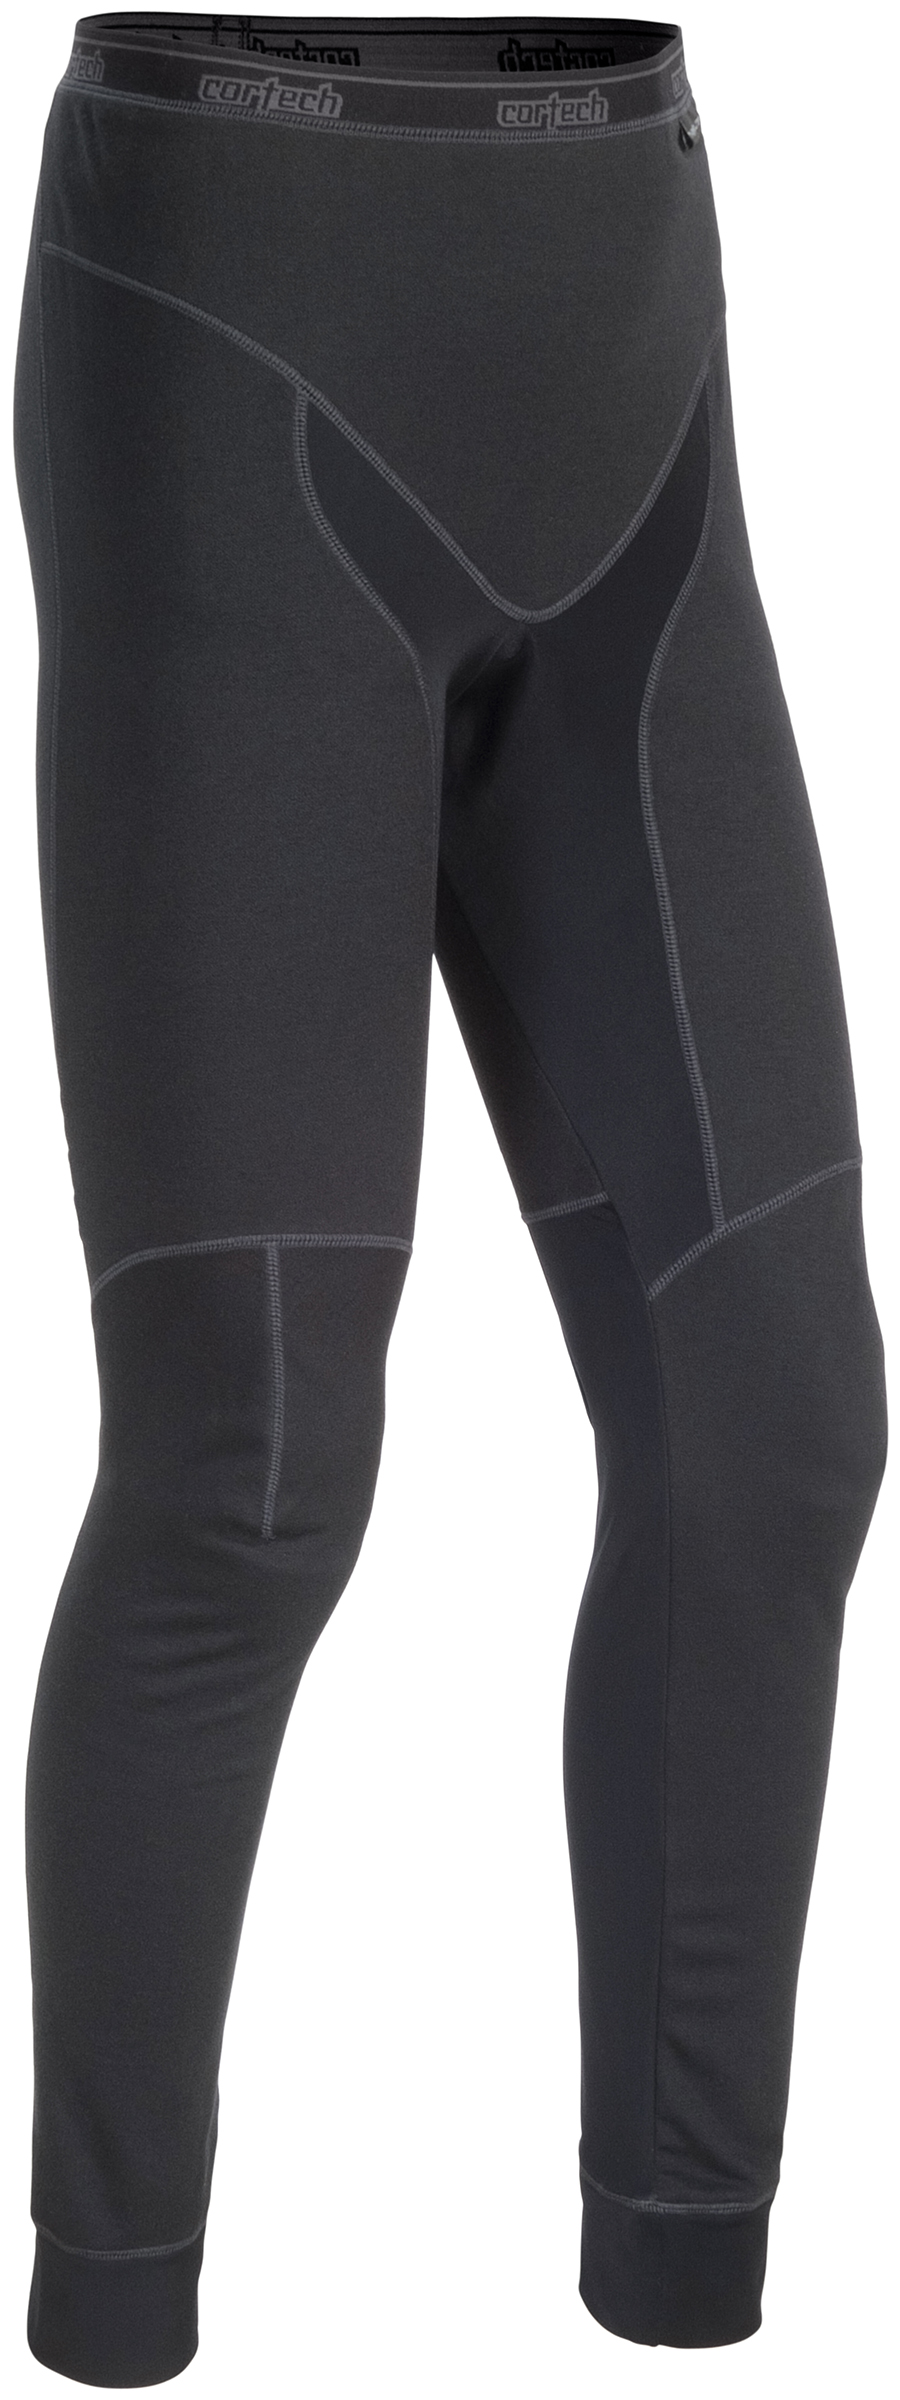 Cortech Journey Thermolite Pants Liner